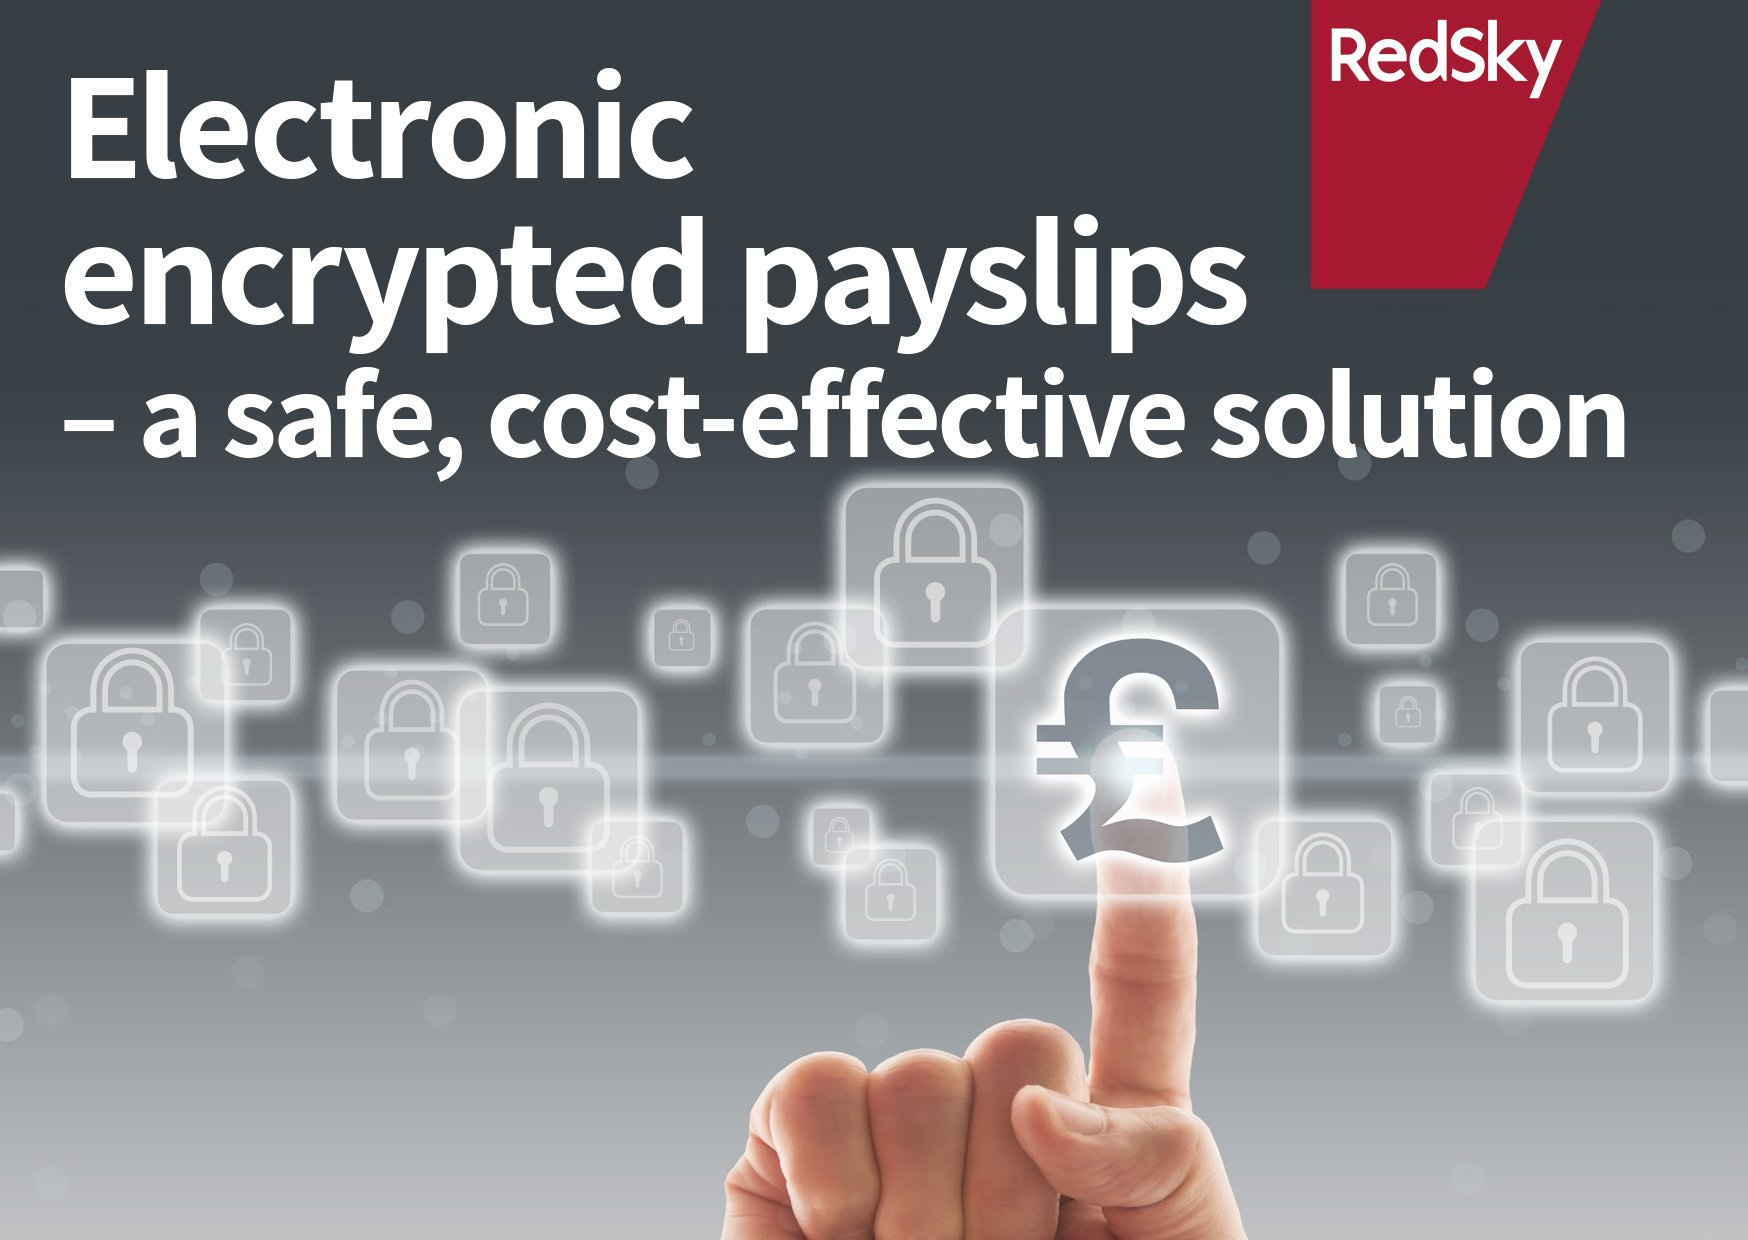 redsky electronic encrypted payslips for hr